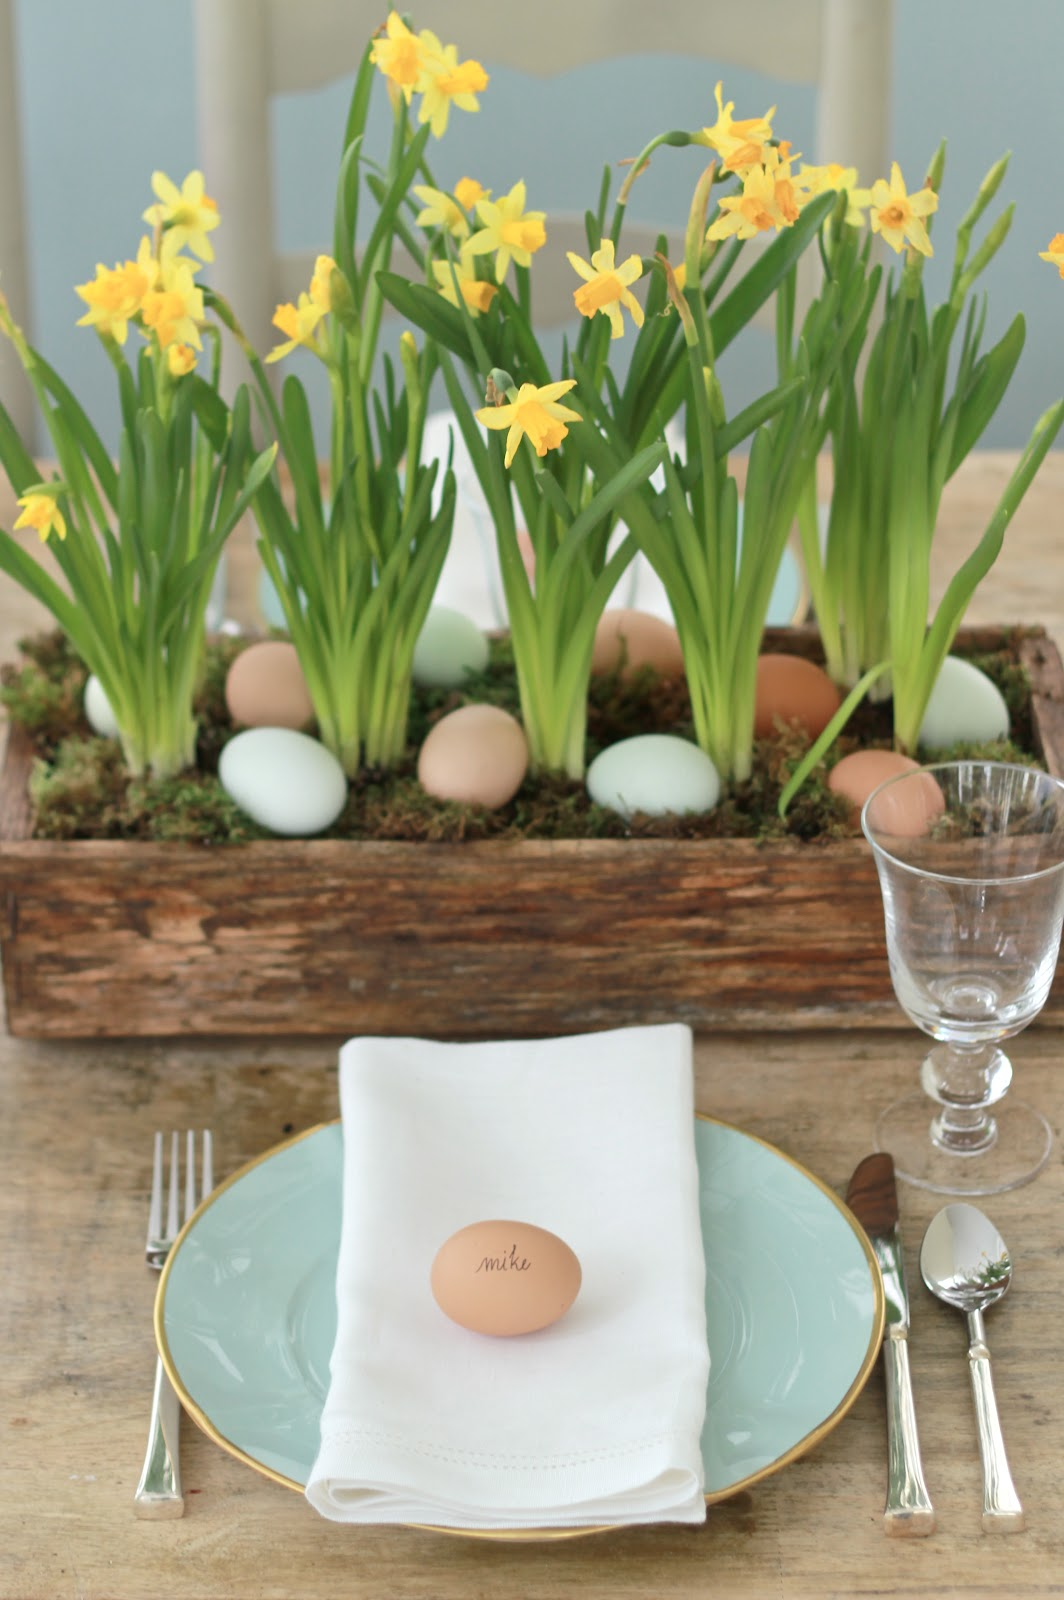 45 amazing easter table decoration ideas godfather style - Table easter decorations ...